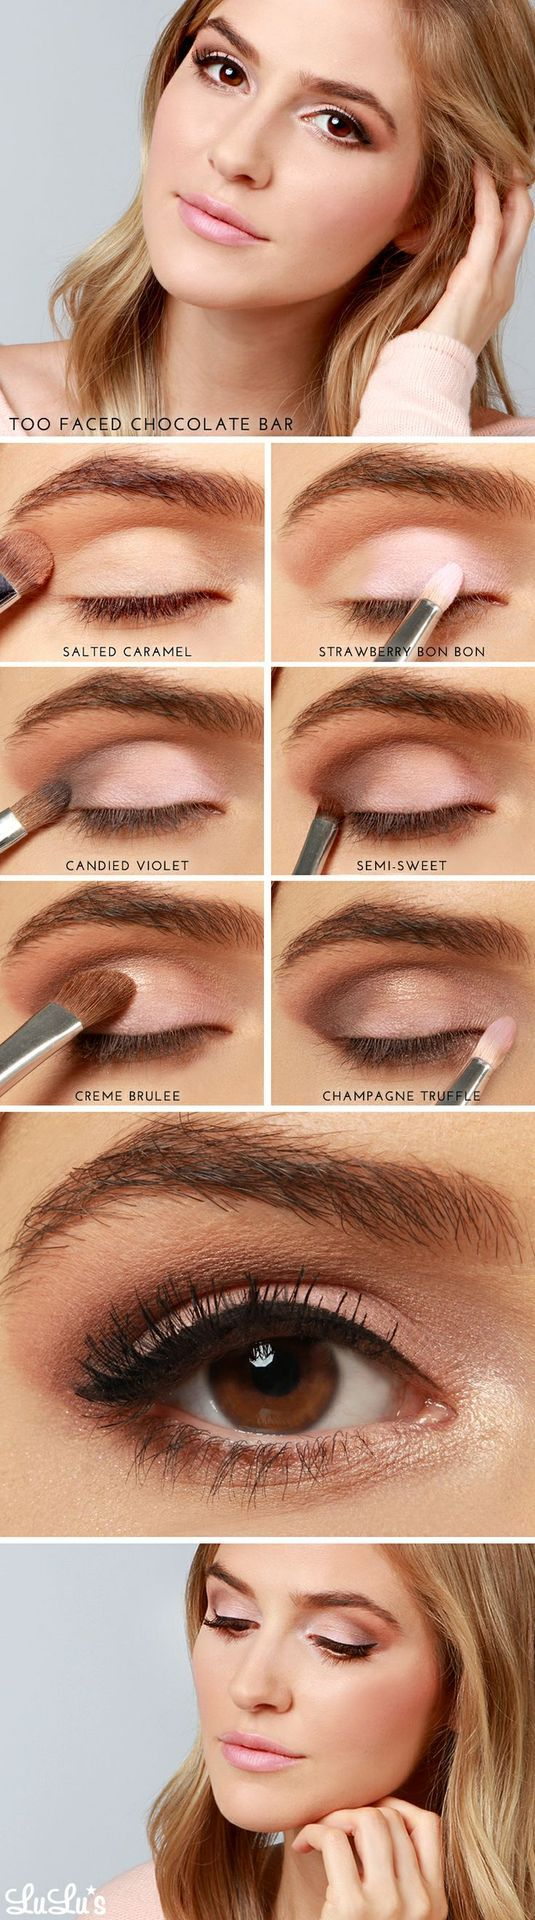 Too Faced Chocolate Bar. Soft day eye makeup tutorial #evatornadoblog